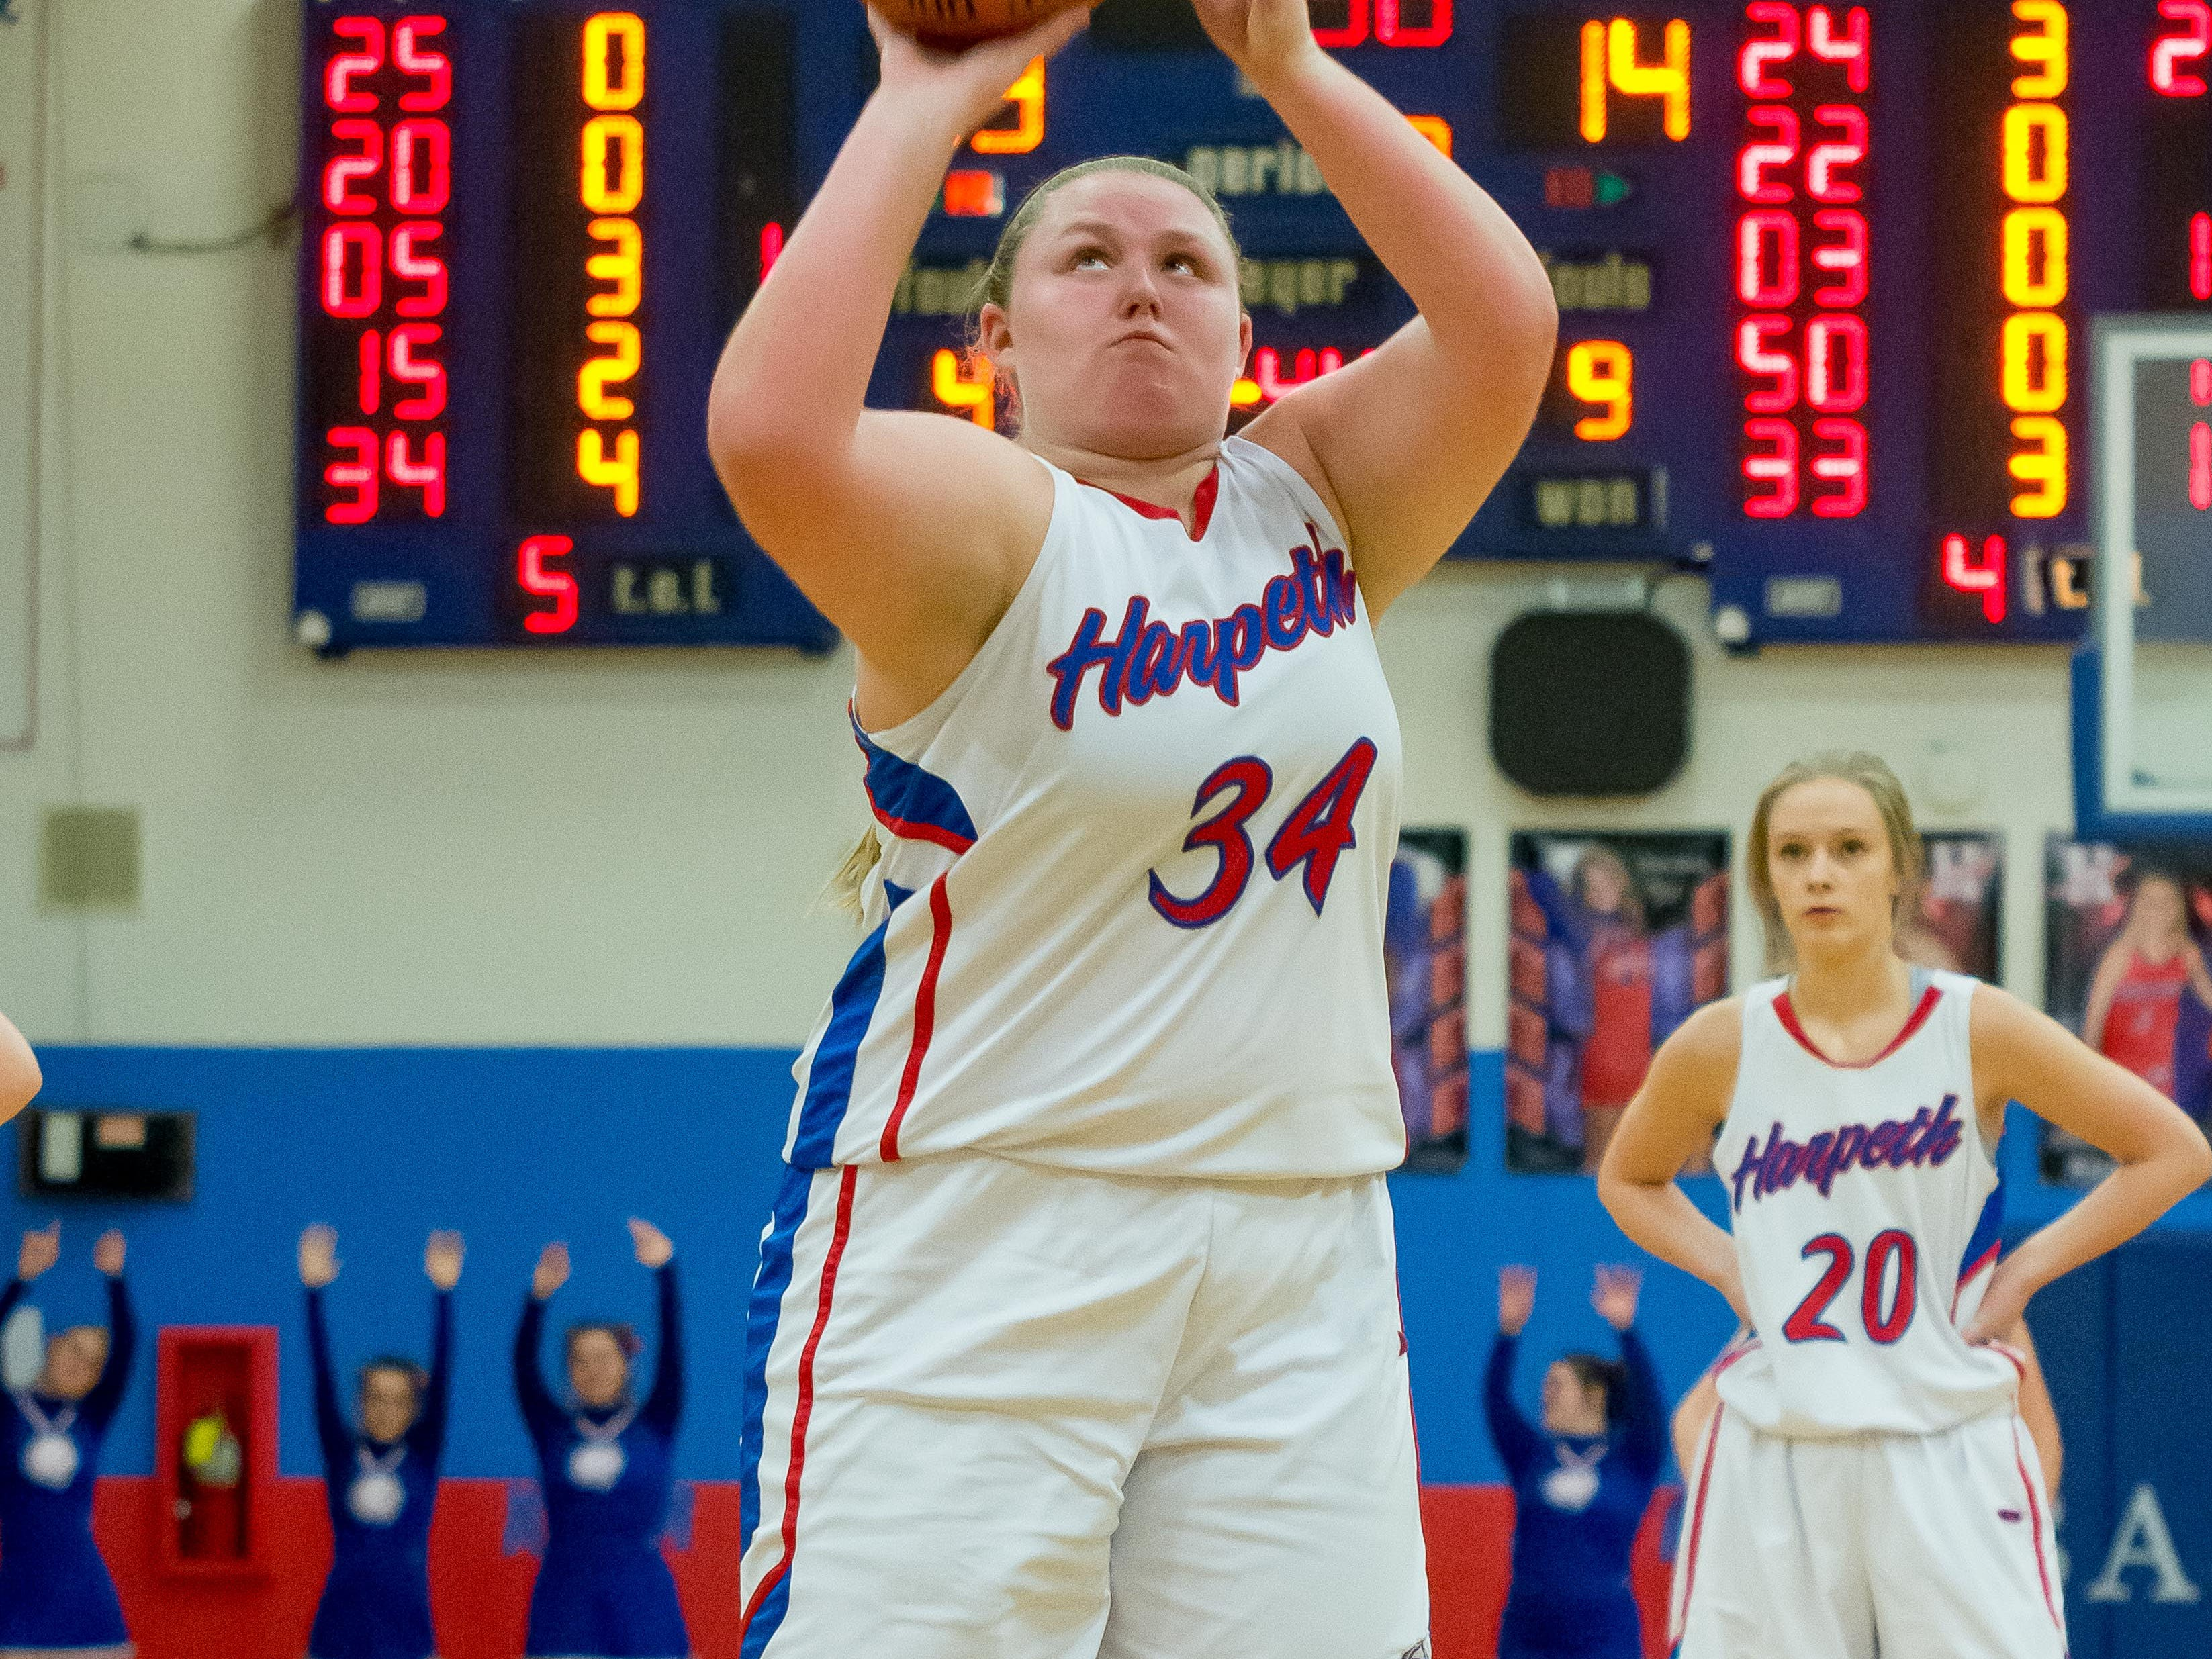 Harpeth's Leigha Adams shoots a free throw against Greenbrier. She had 15 against the Lady Bobcats.